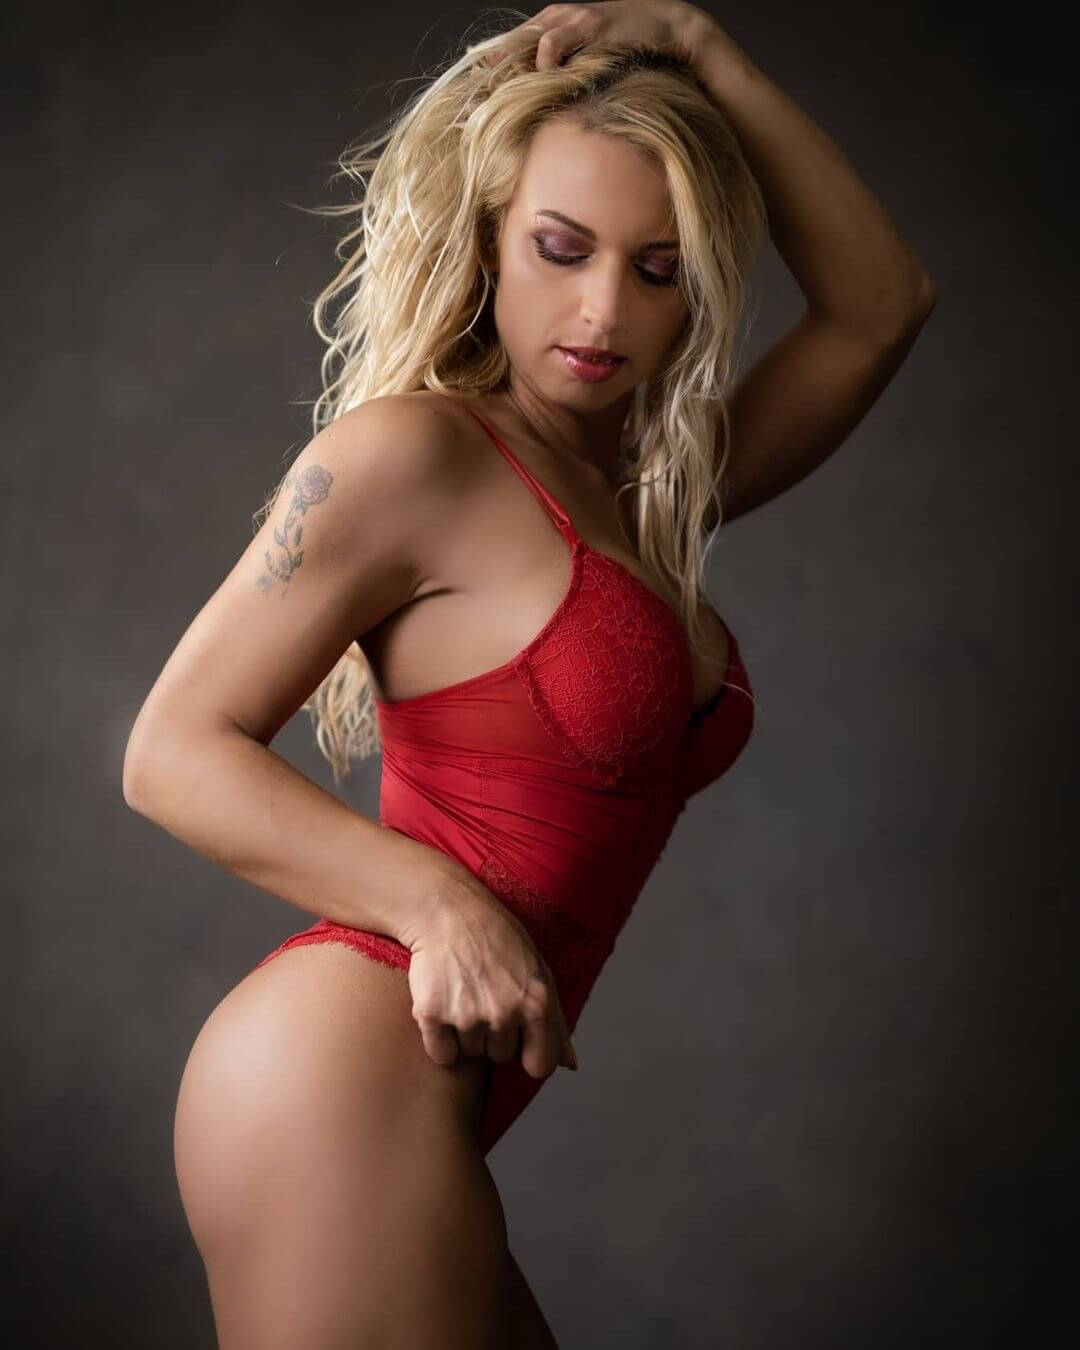 Sexy blonde Dutch tattooed fitness model and mom Willeke Bartels wearing red lingerie holding one arm up on a sensual boudoir photo session